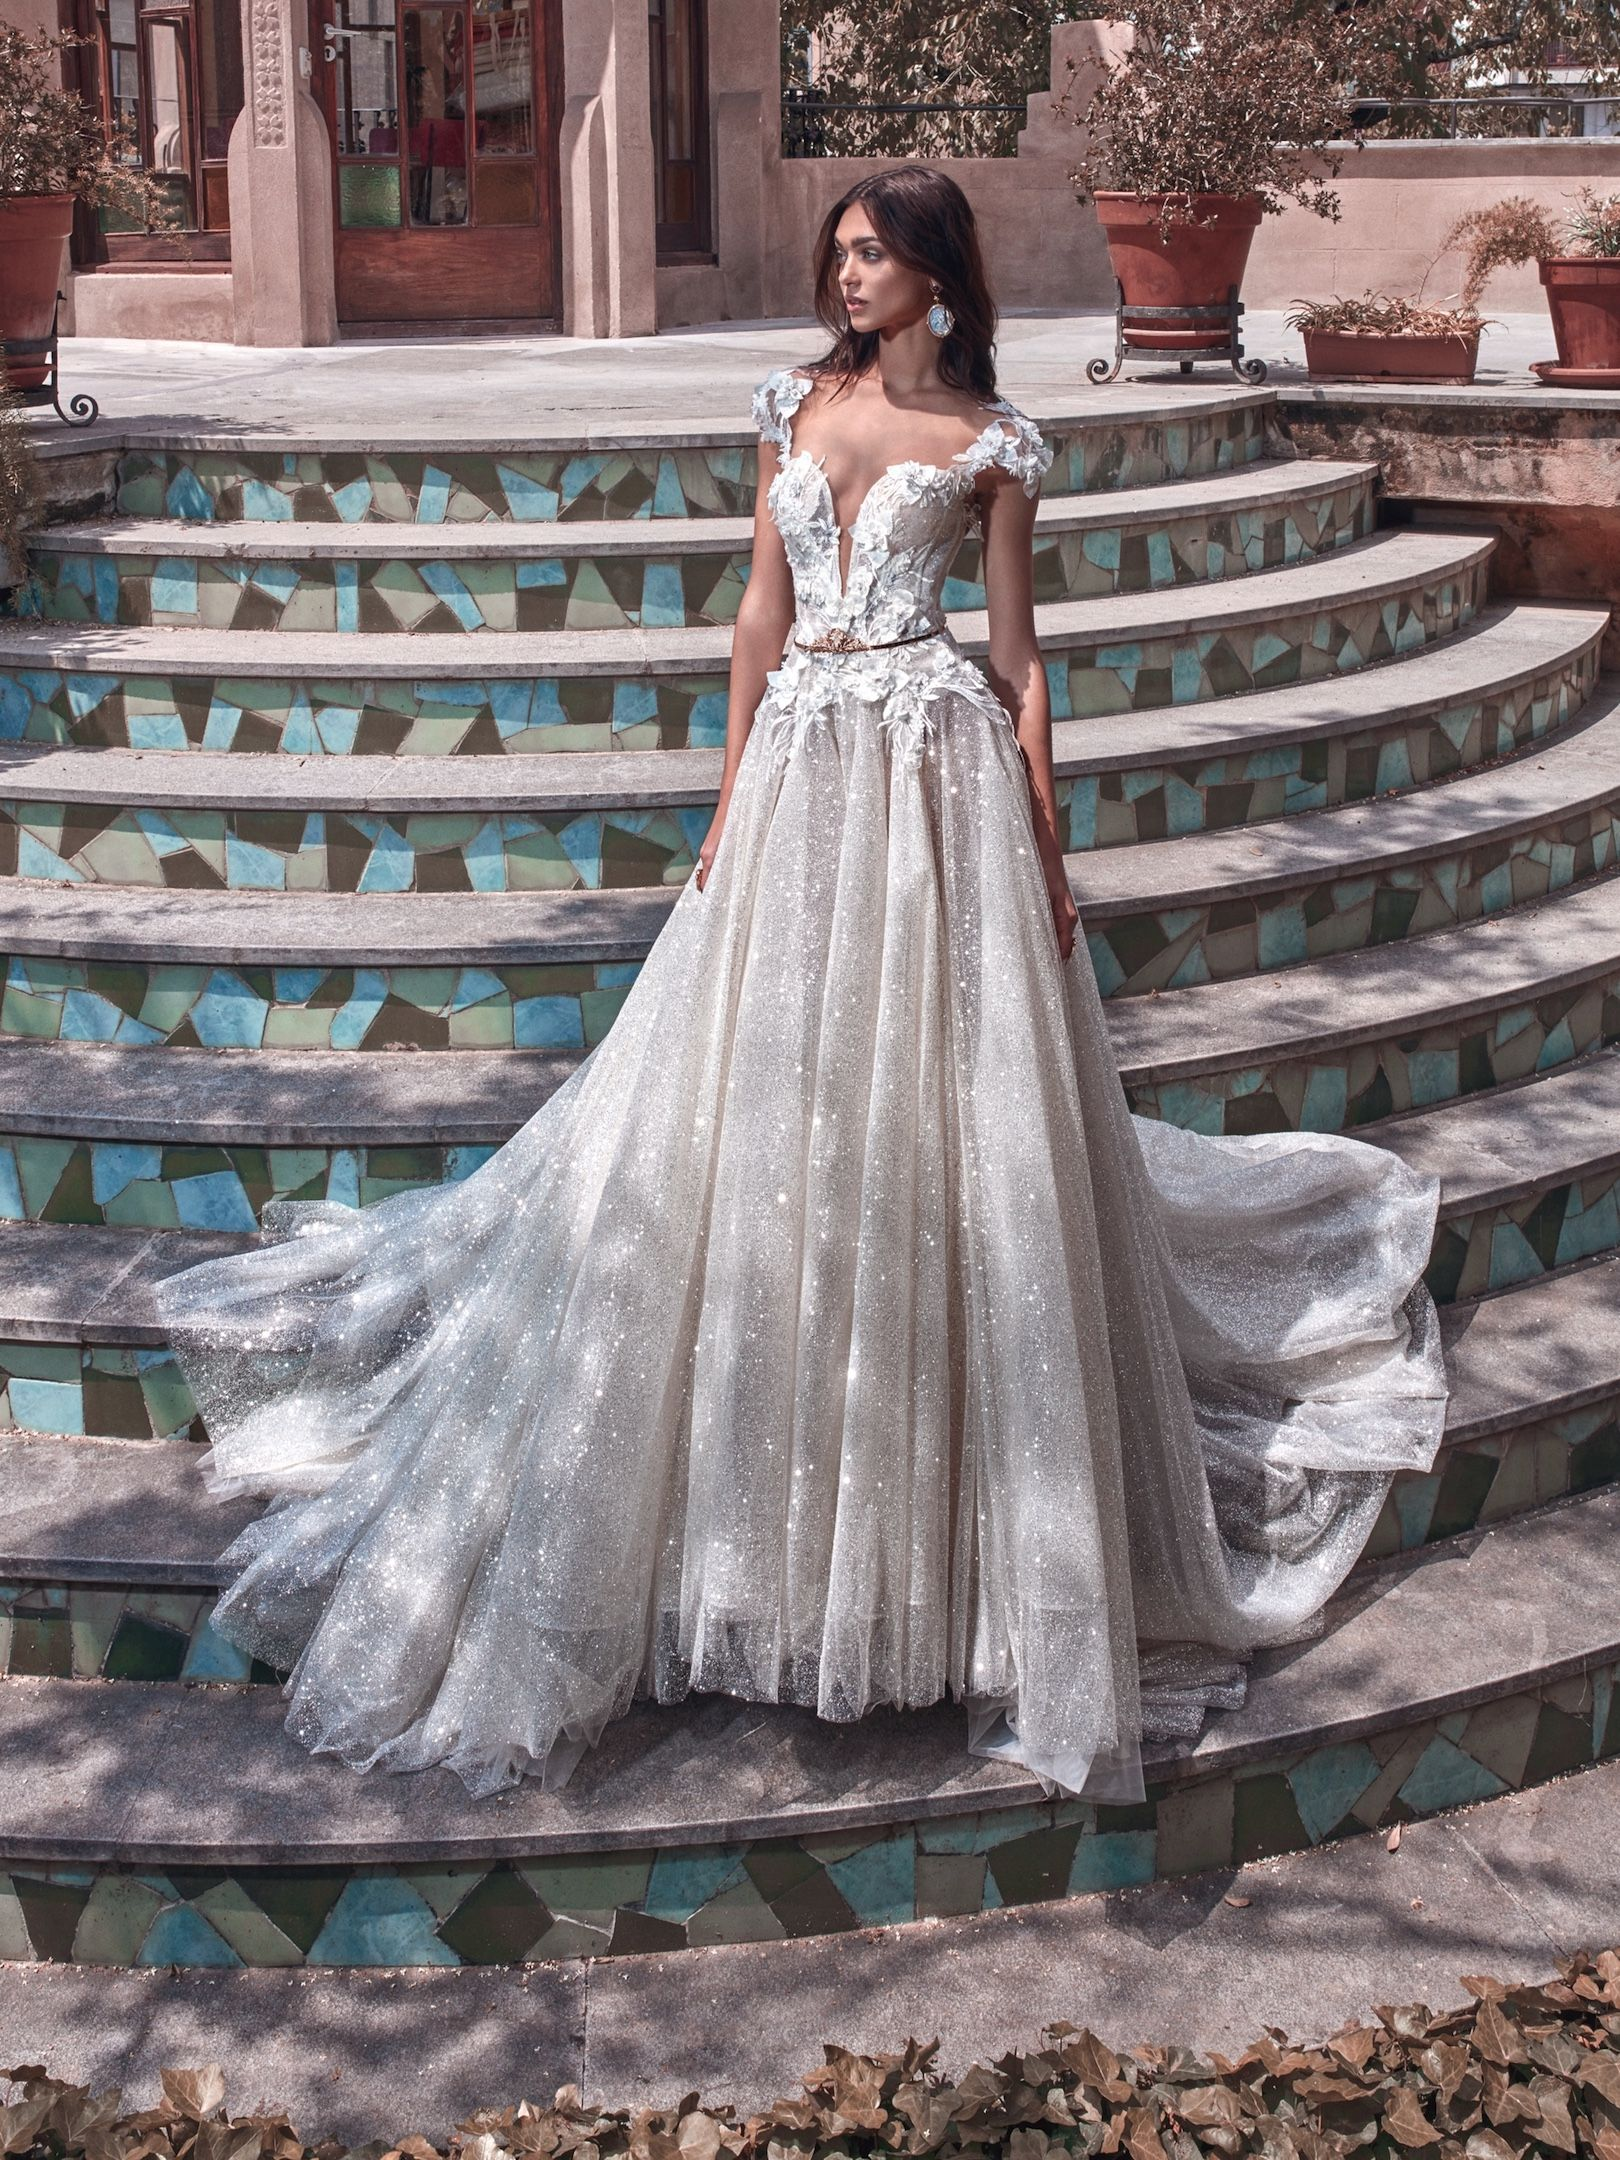 Galia lahav wedding dresses 2018 victorian affinity collection wedding dresses galia lahav wedding dresses 2018 victorian affinity collection more junglespirit Images